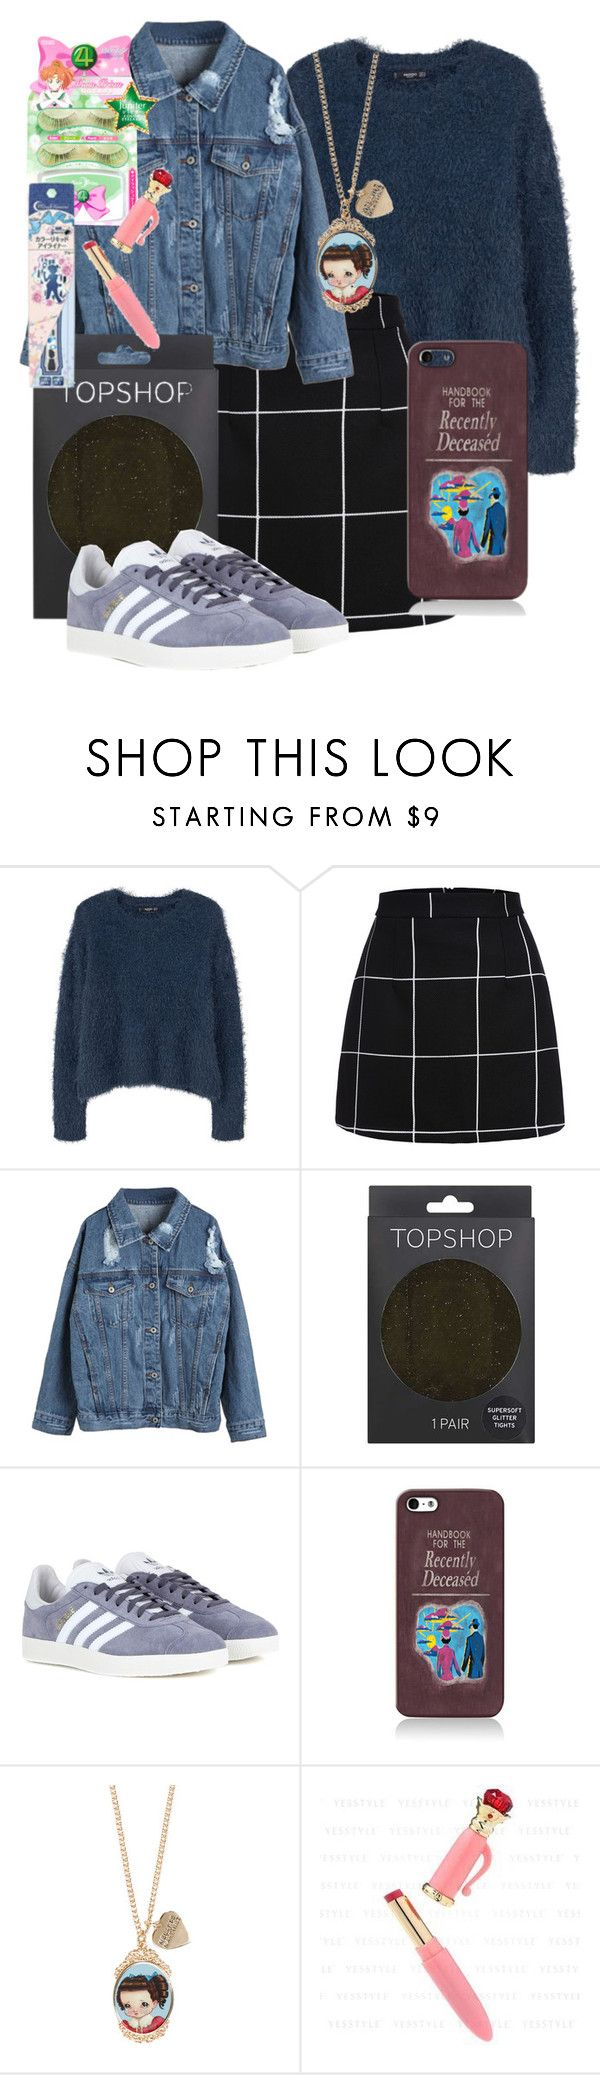 """style this trending item"" by xcheerio-kierox ❤ liked on Polyvore featuring MANGO, WithChic, Topshop and adidas"